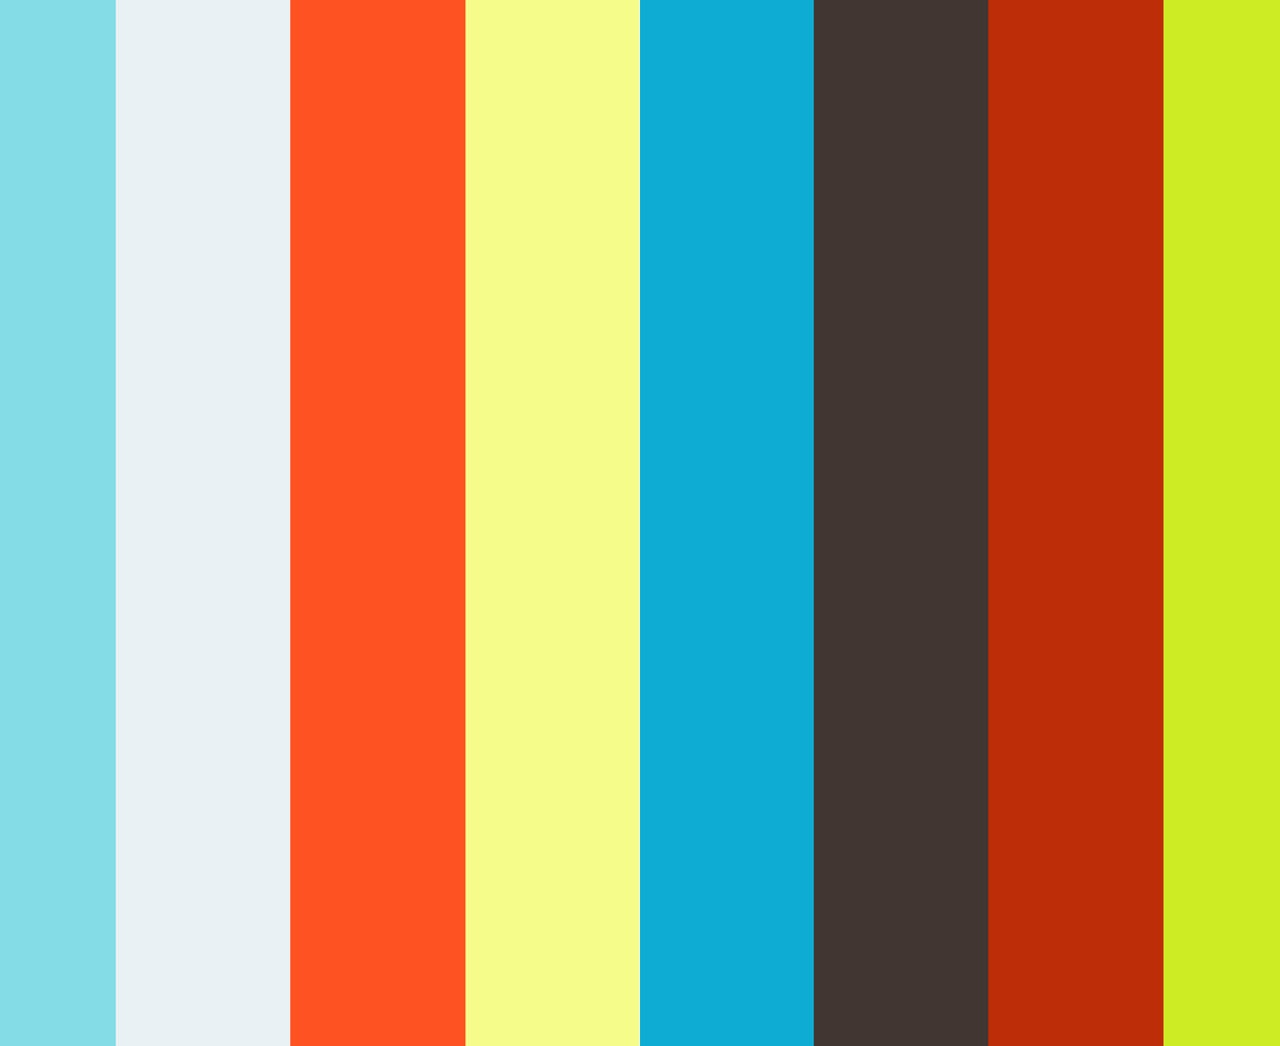 club before opening time mp4